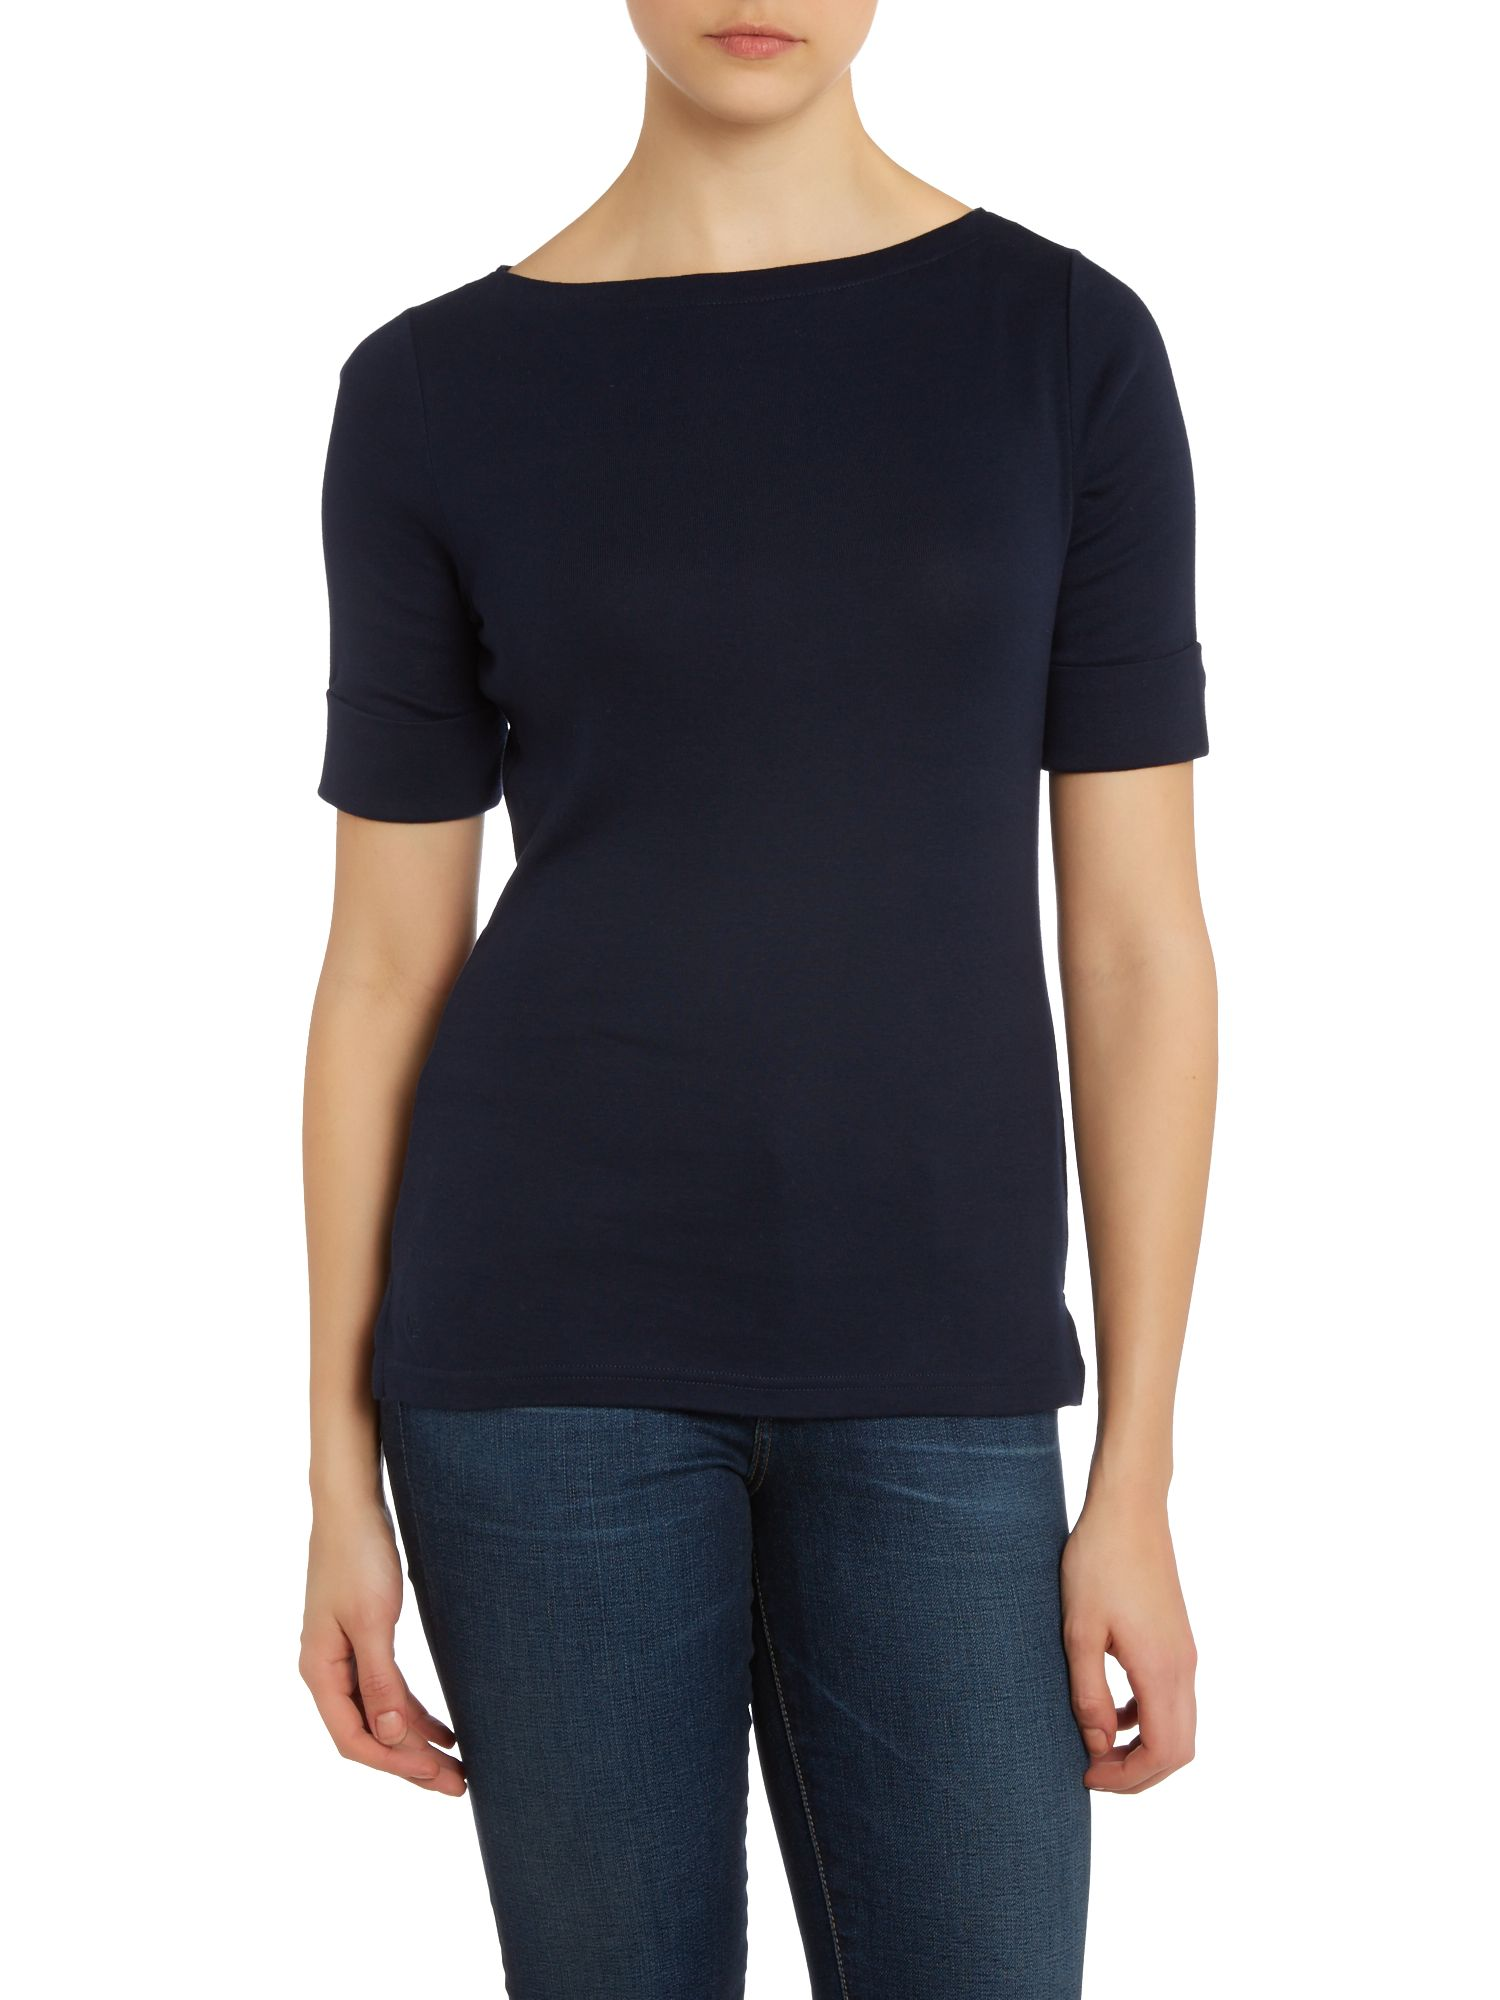 Boatneck top with hem embroidery